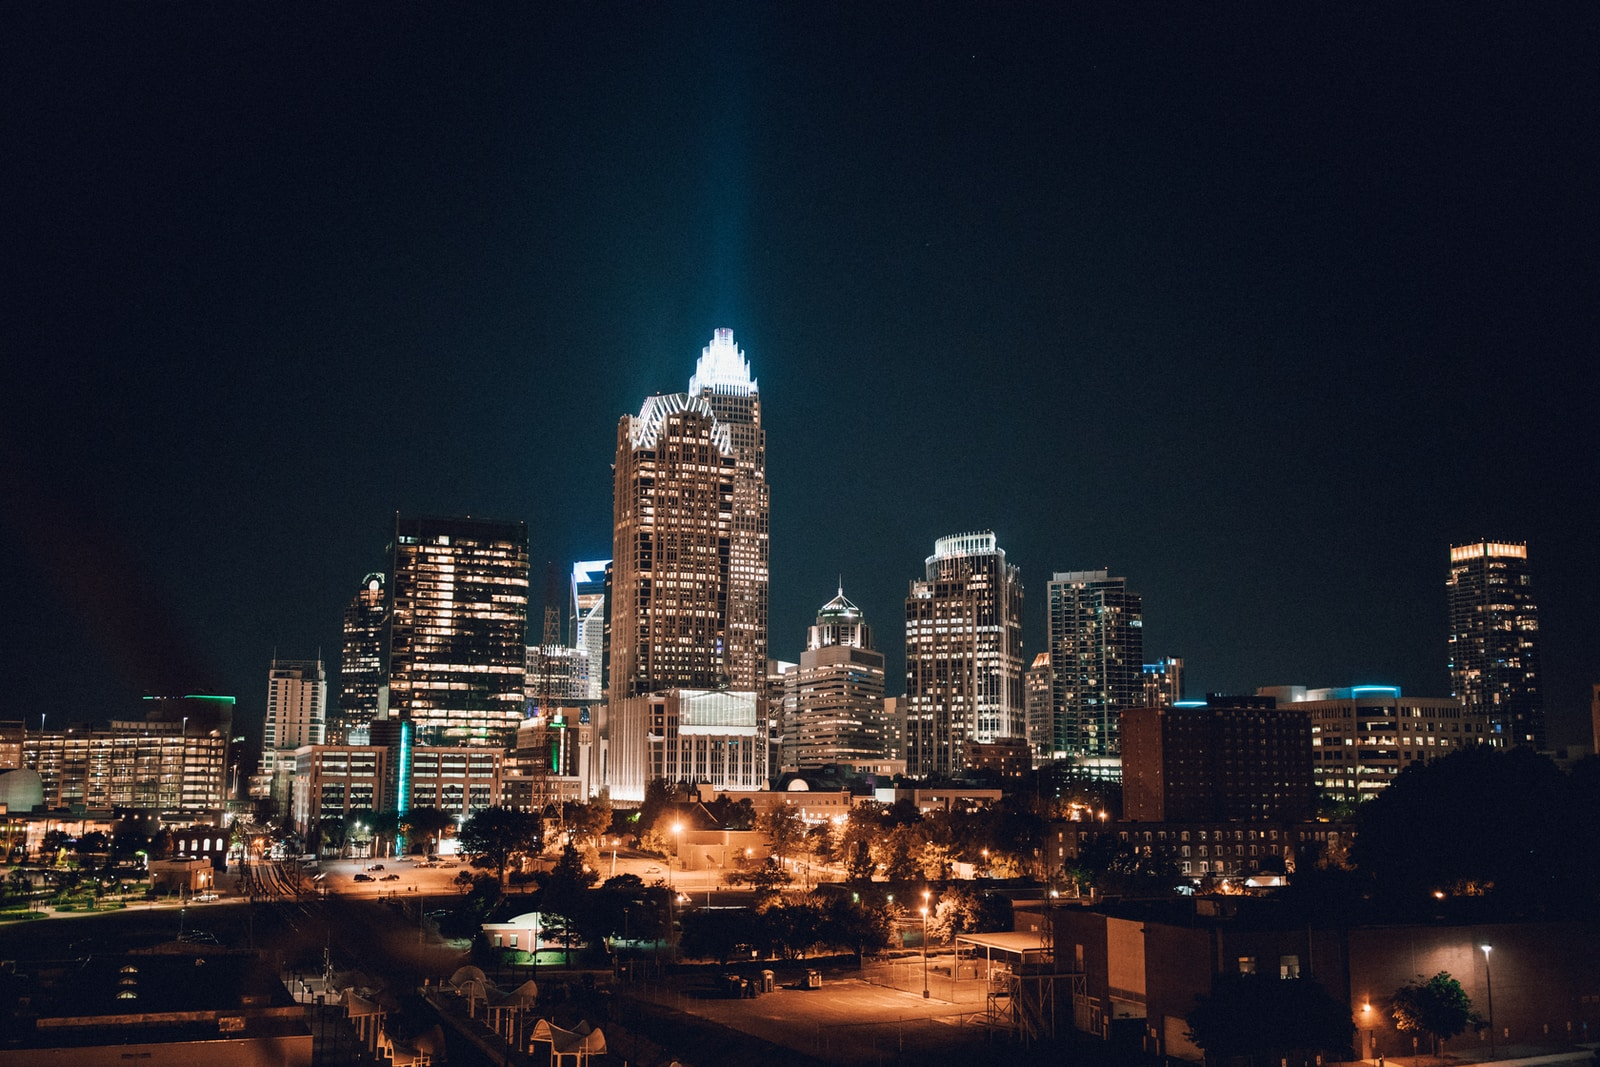 photography of building during nighttime